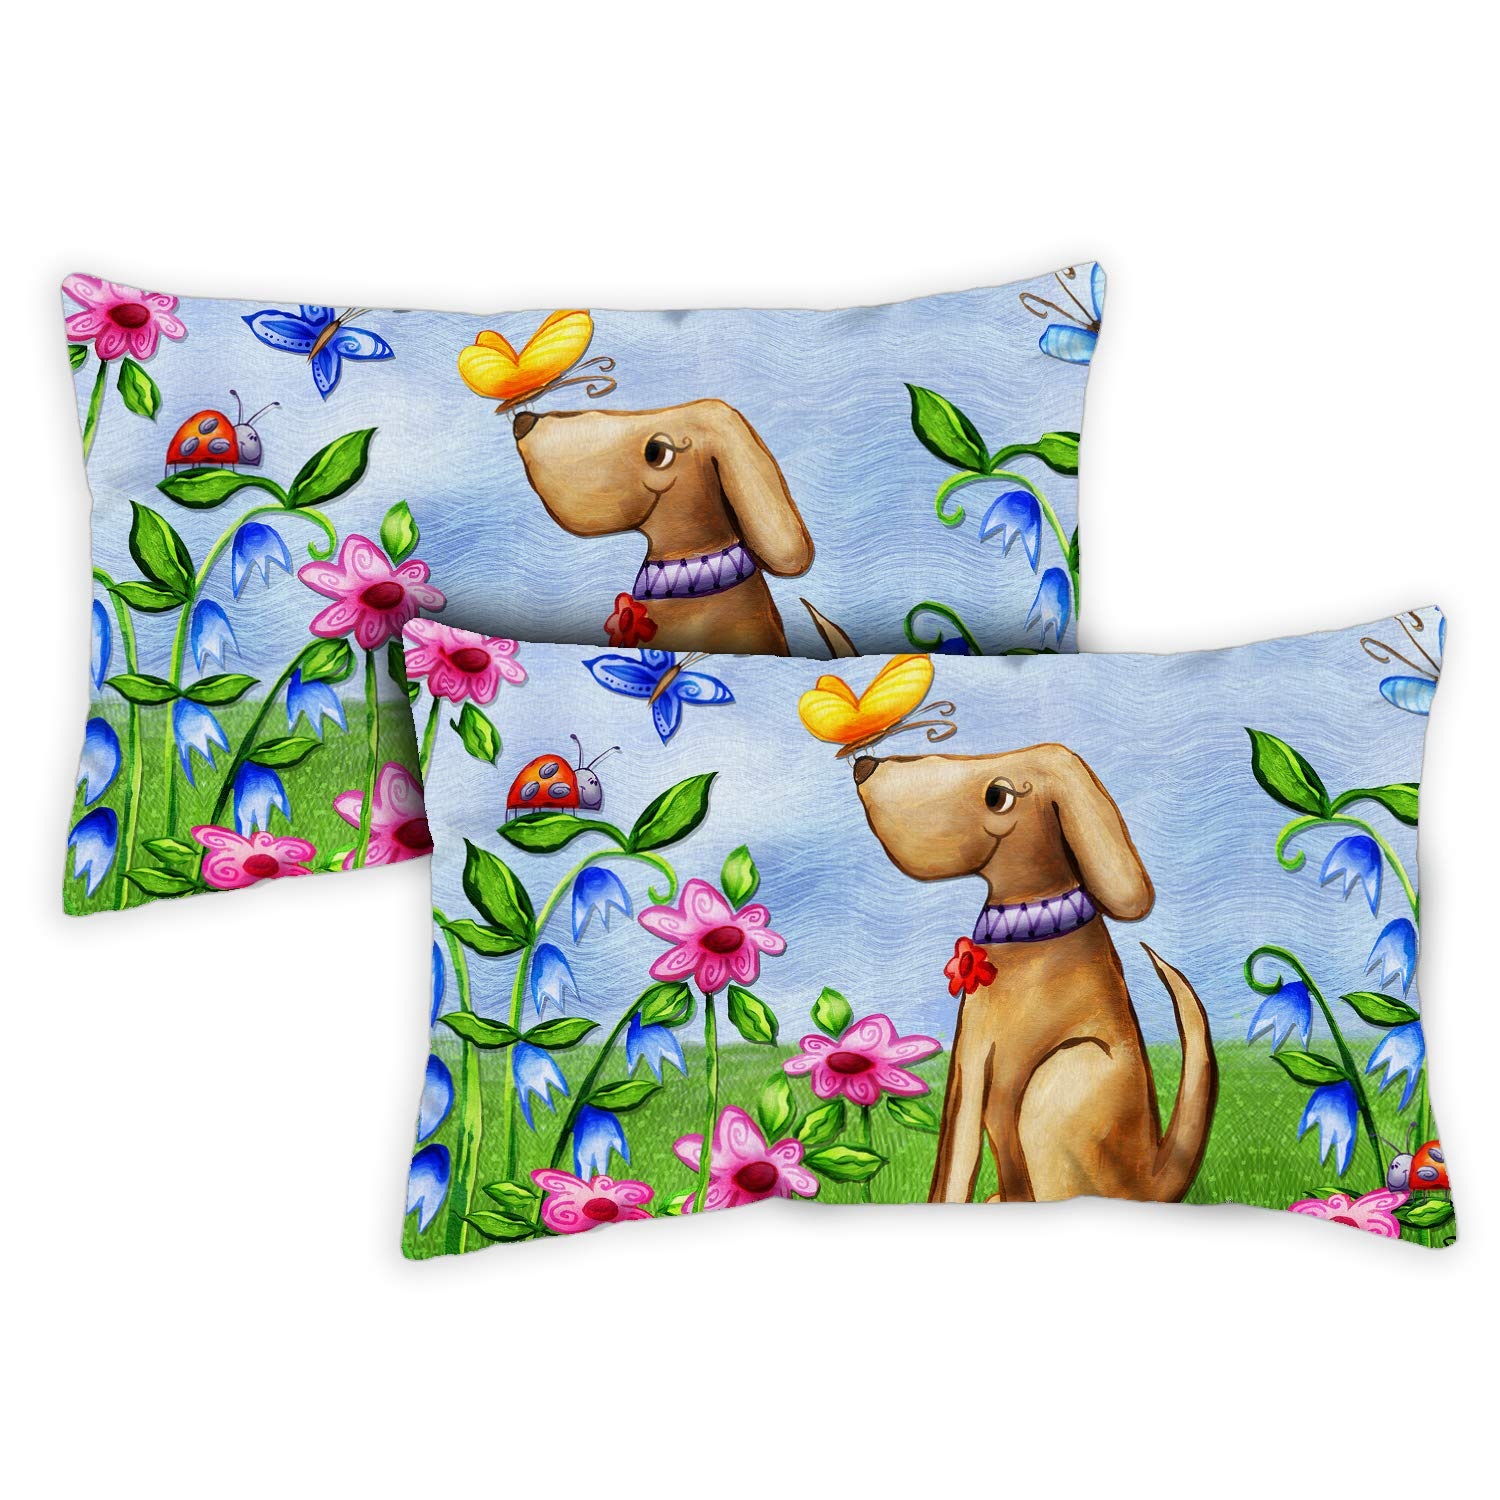 Toland Home Garden 731213 Welcome Dog 12 x 19 Inch Outdoor, Pillow, Insert 2-Pack